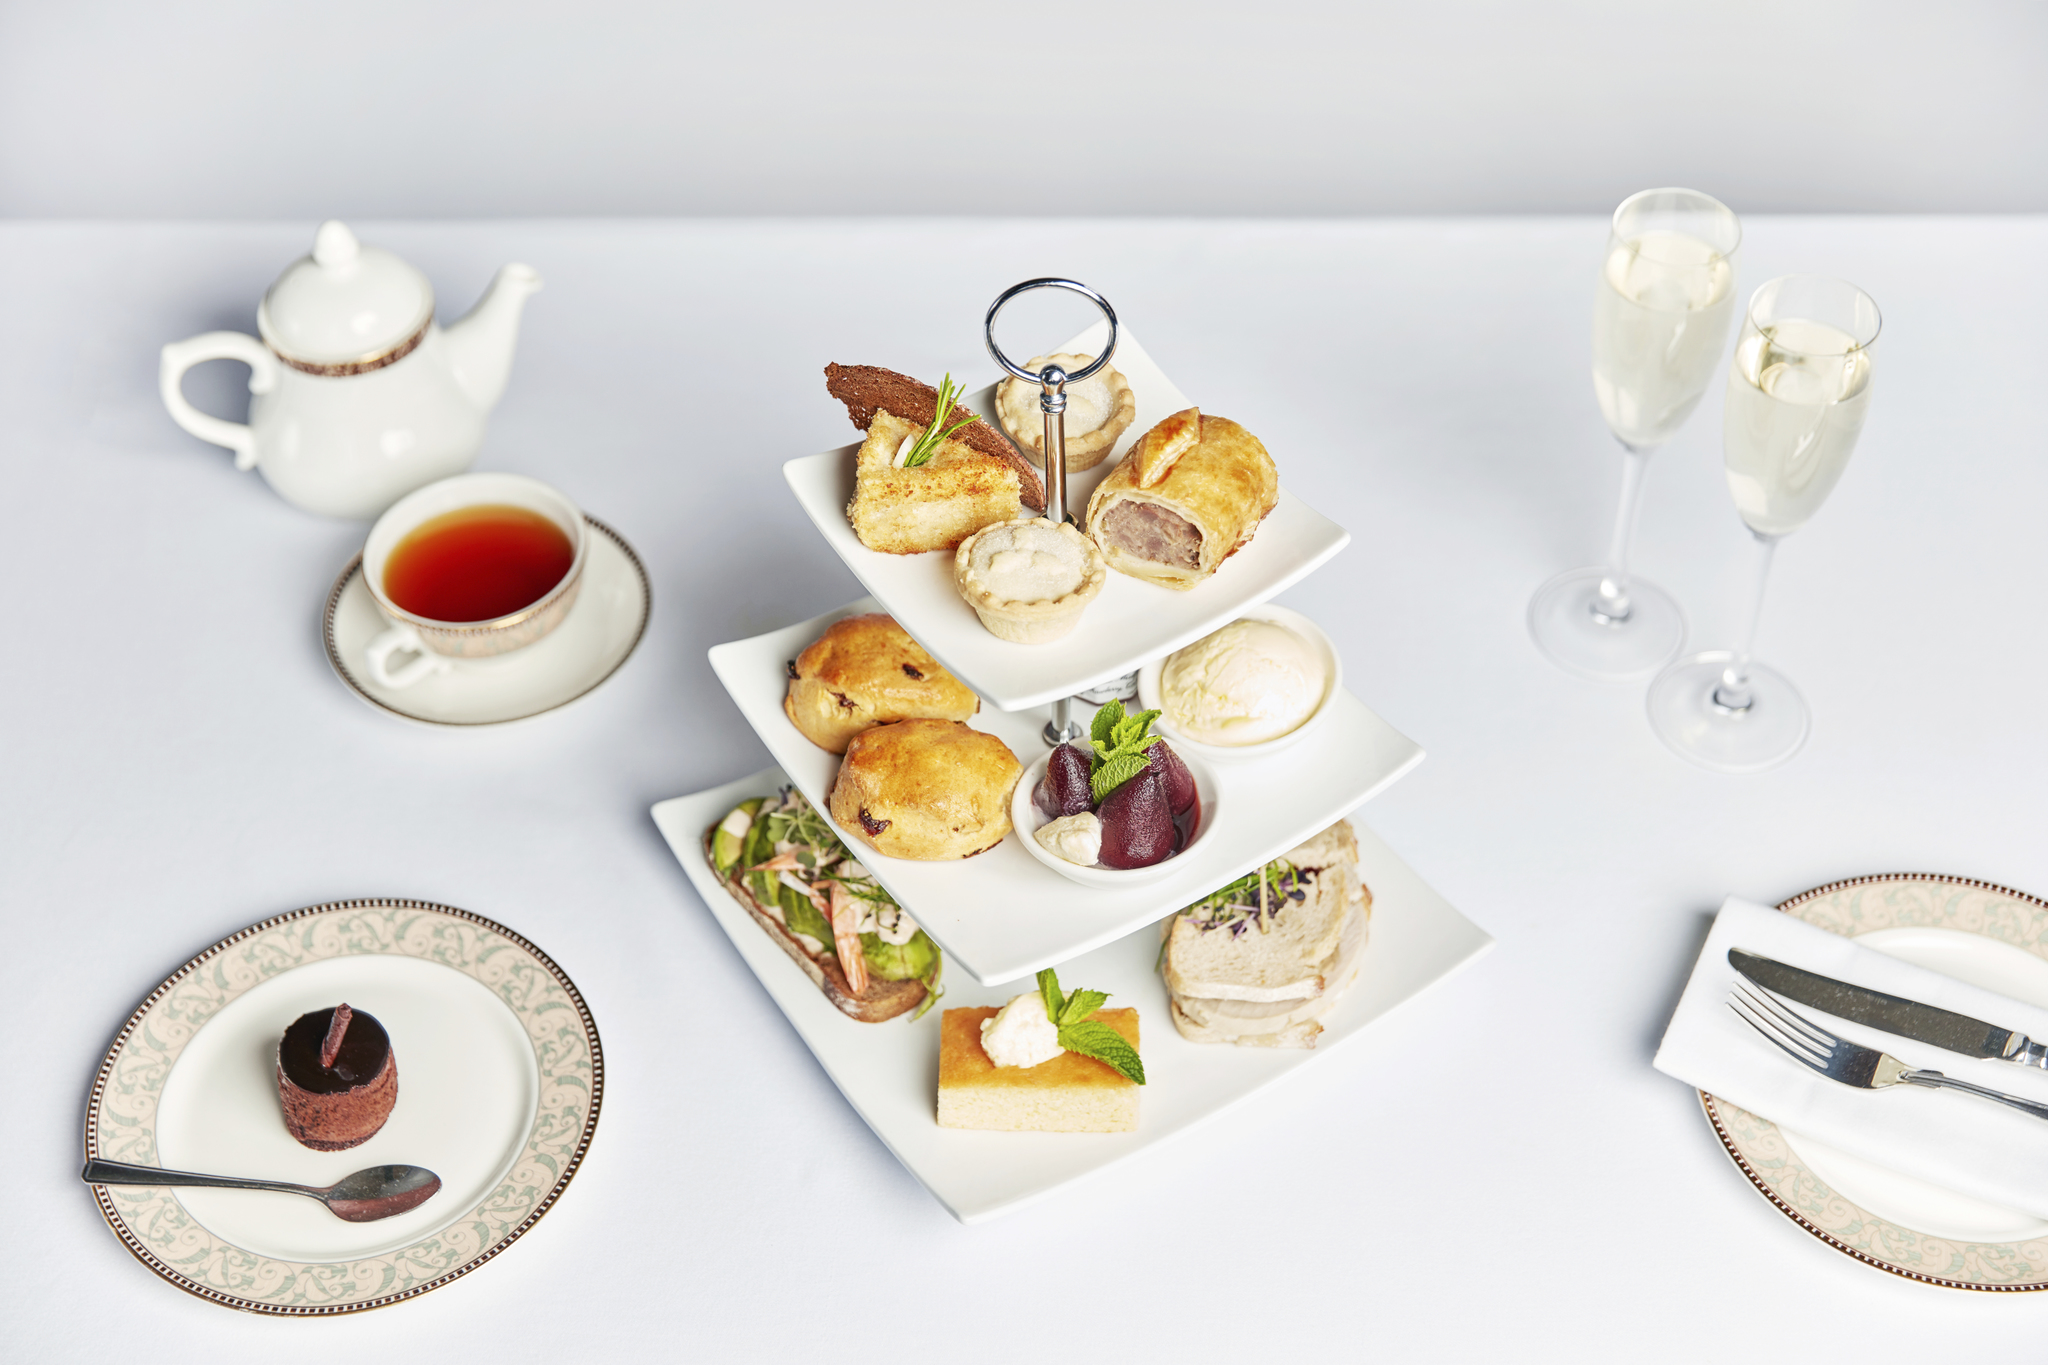 Afternoon Tea at Breadsall Priory Marriott Hotel & Country Club - Derbyshire